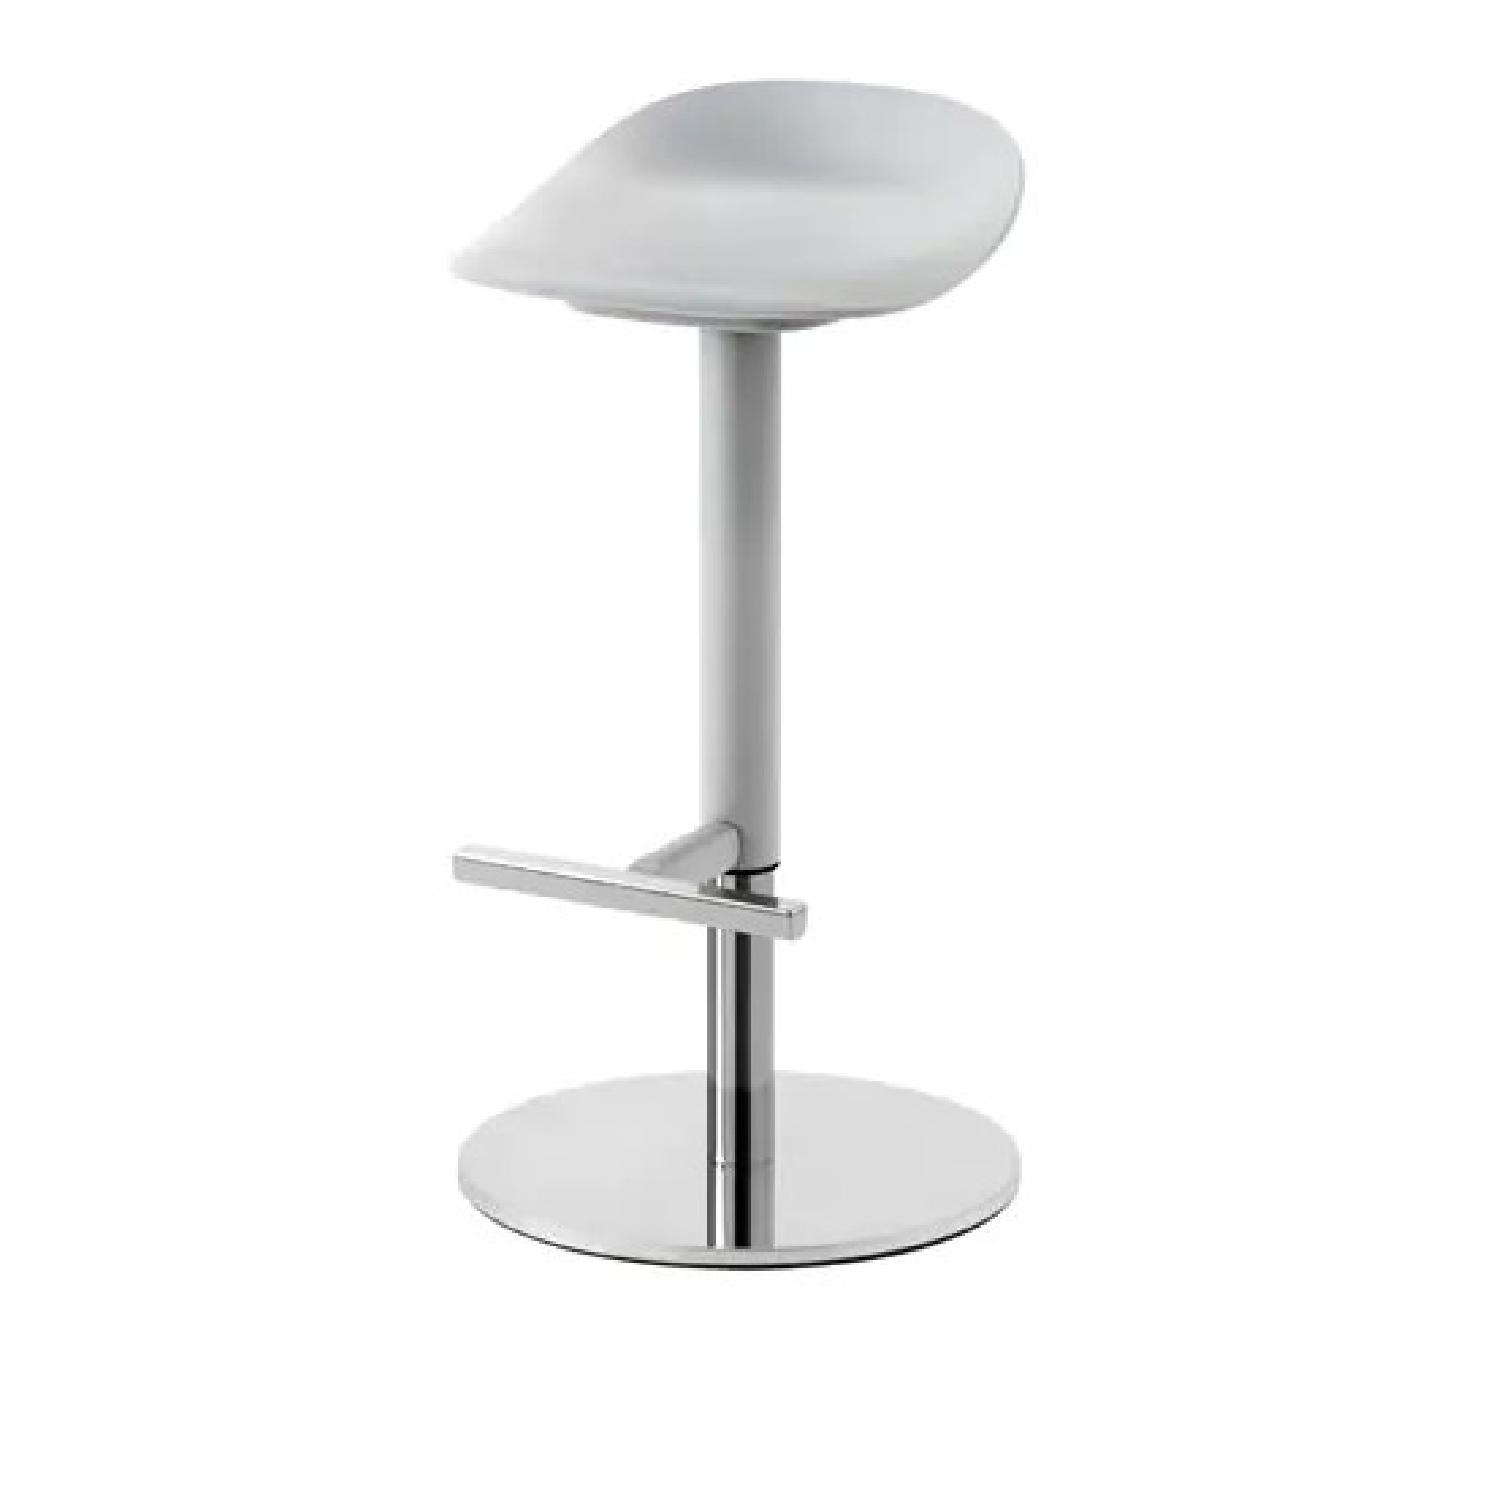 Ikea Janinge Adjustable Bar Stools